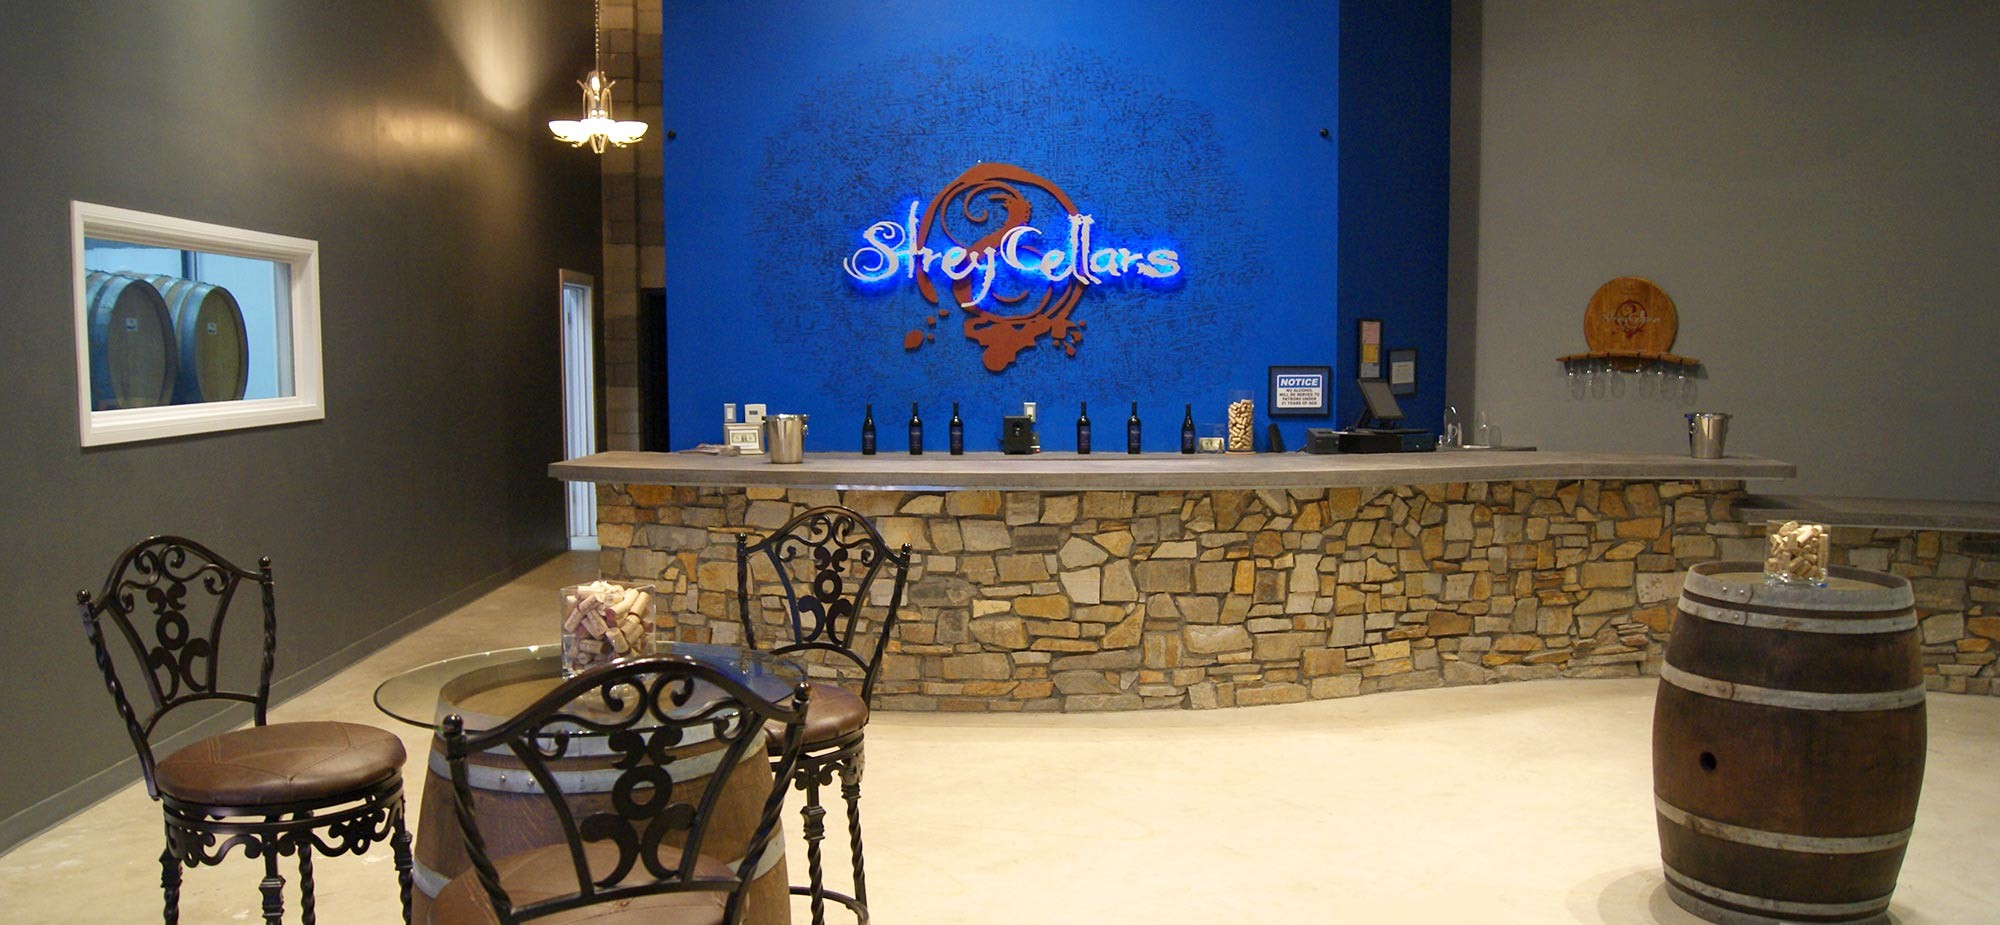 strey-cellars-tasting-room-home